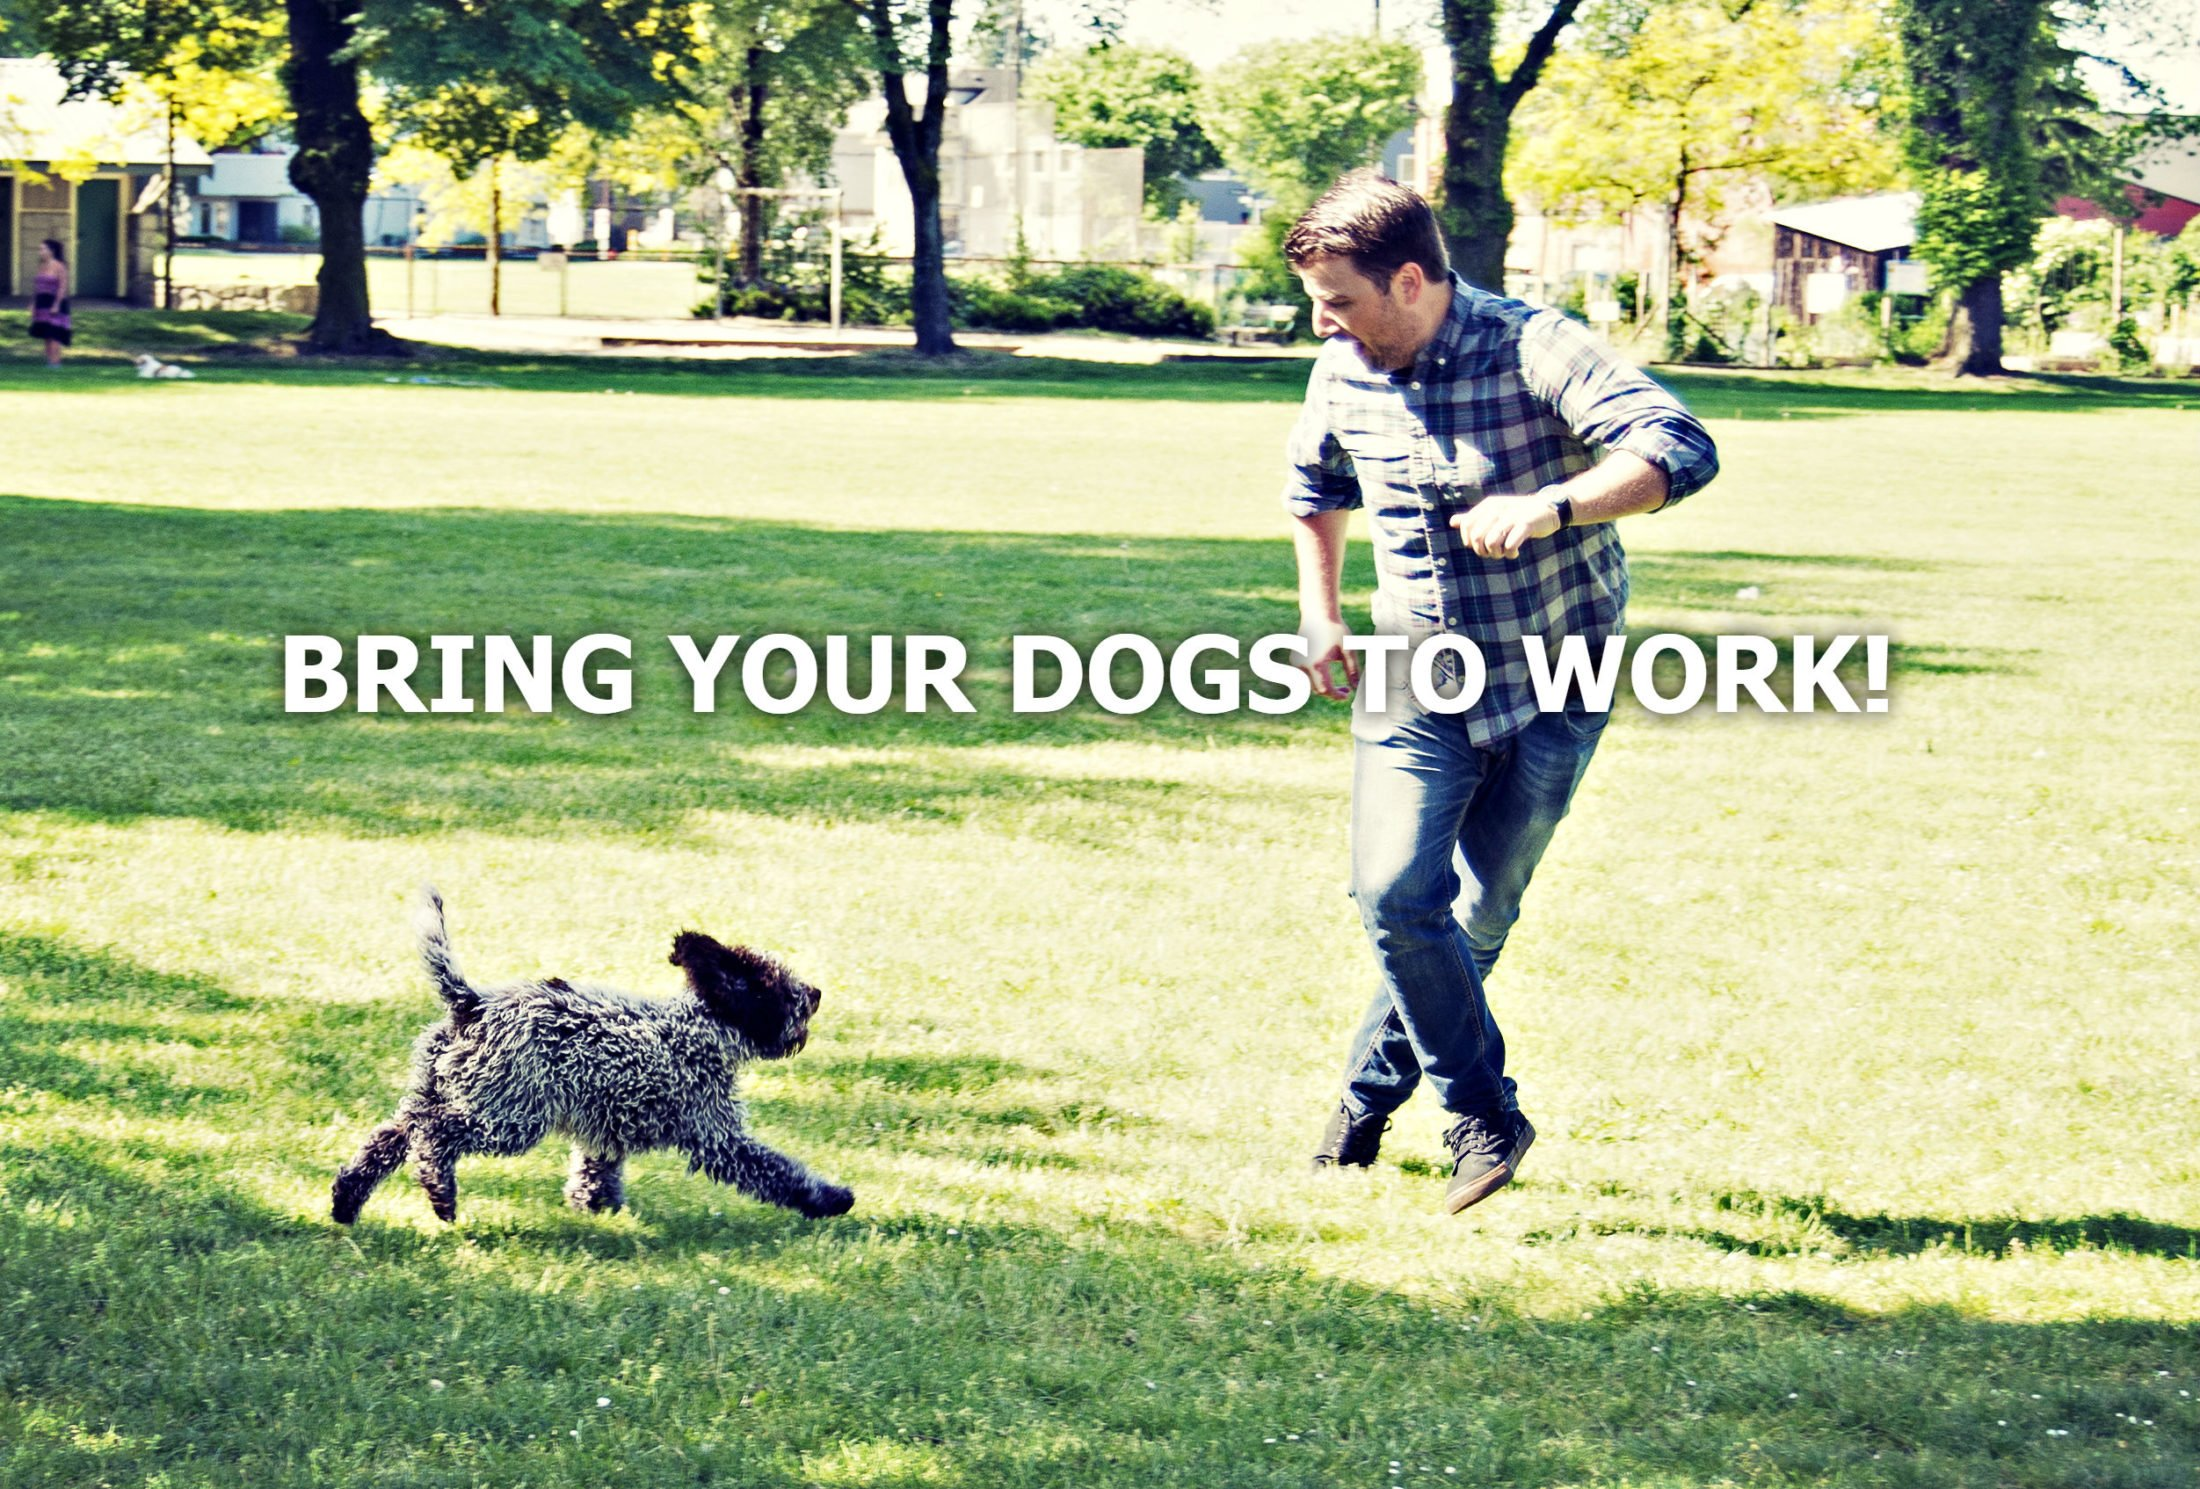 YOUR WORKPLACE REALLY NEEDS TO BE DOG PAWTHORIZED